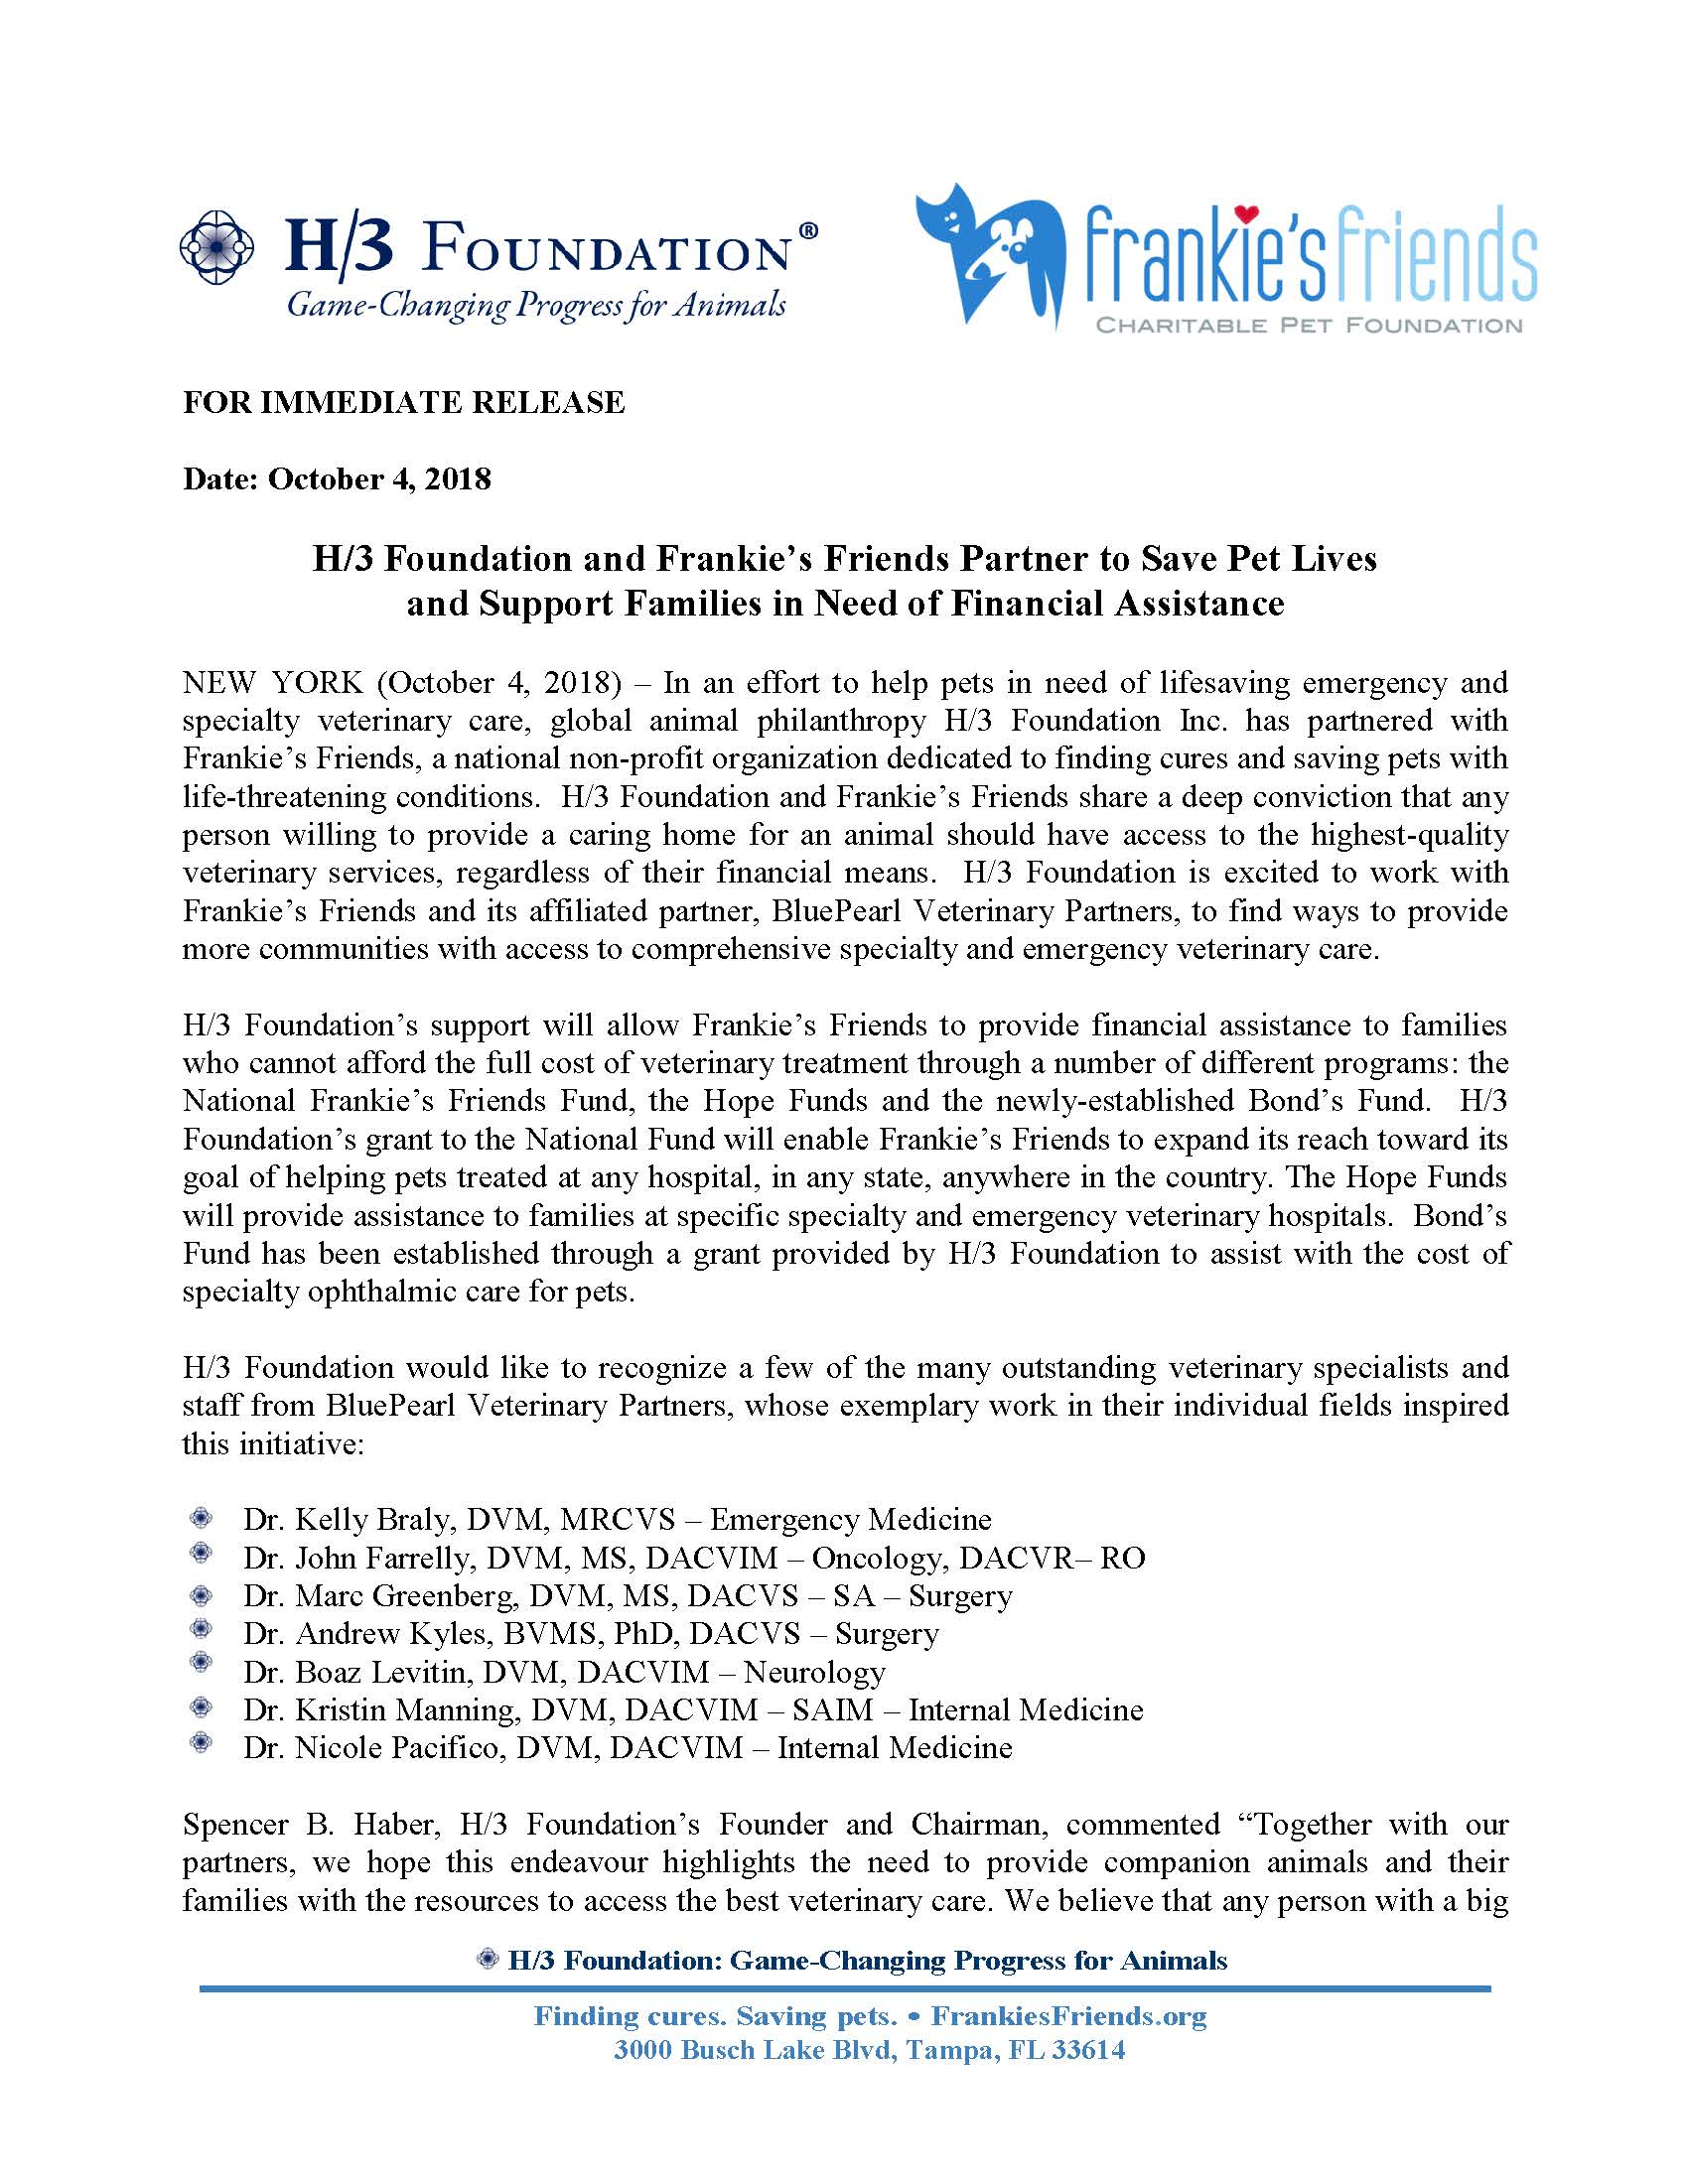 H3 FF donation Press Release_Page_1.jpg